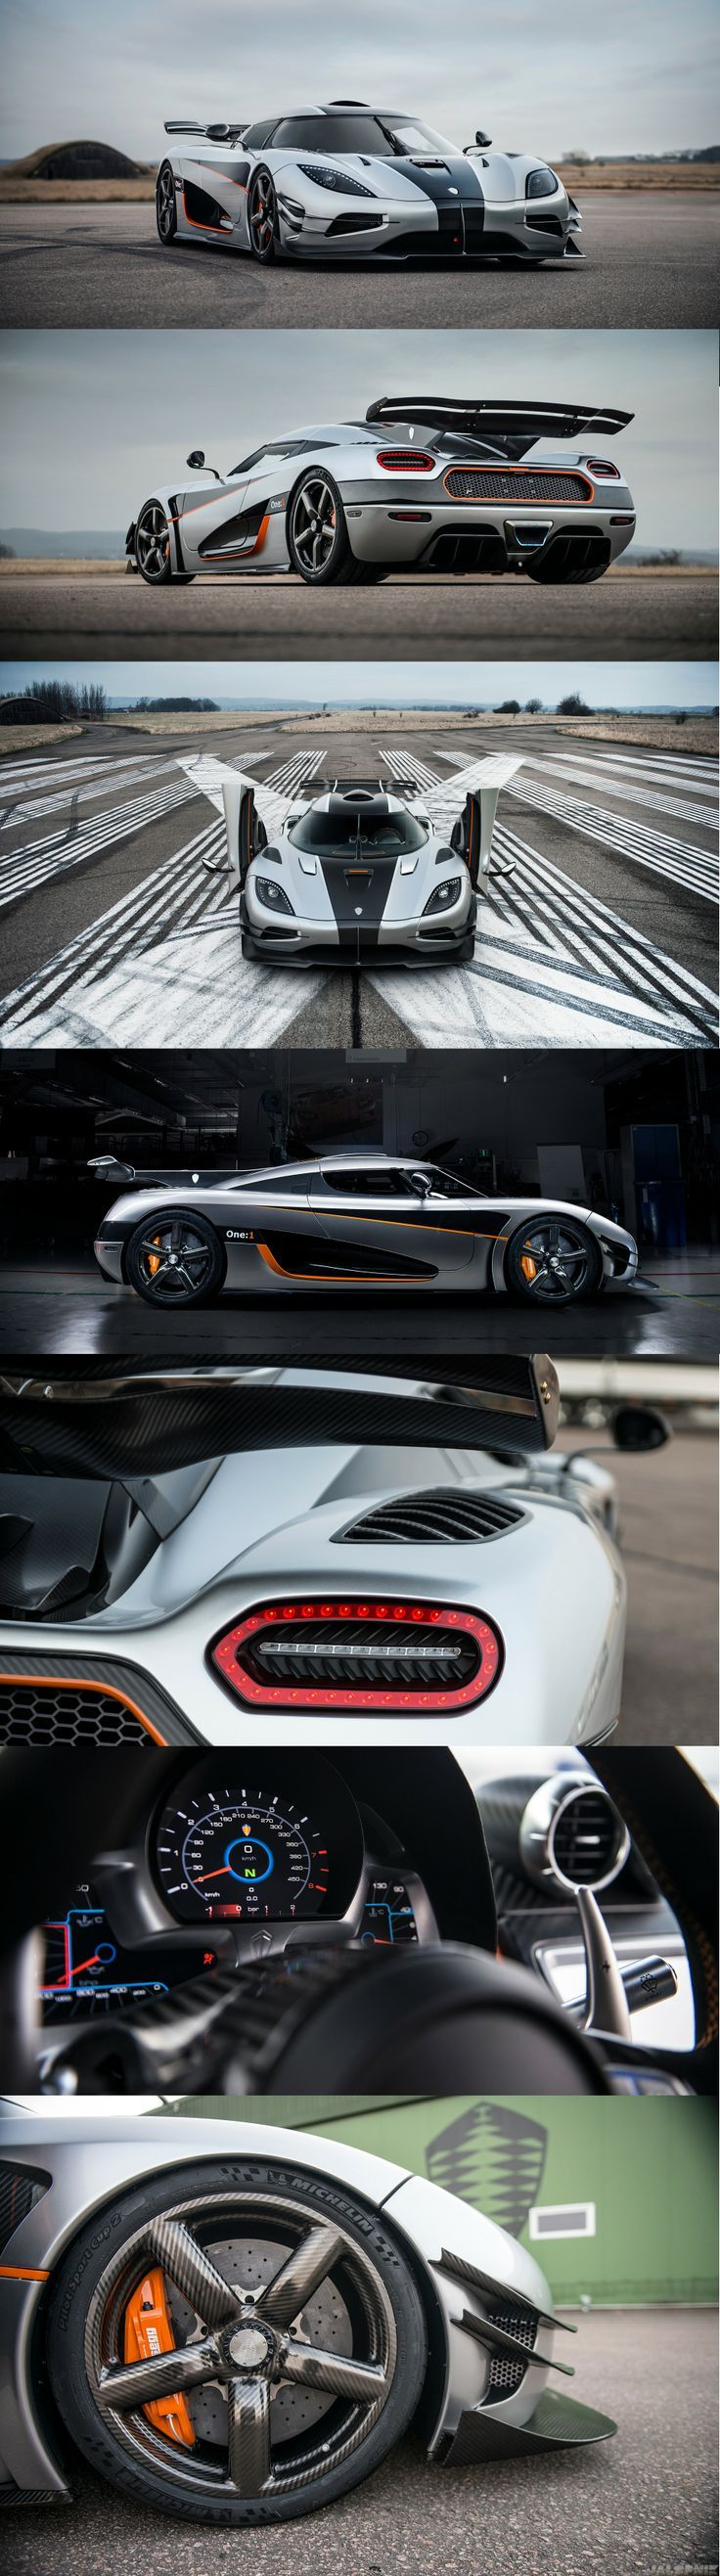 Koenigsegg One:1. Just so everyone knows, this can go from 0-248 mph in 20 seconds. I'll let that sink in...